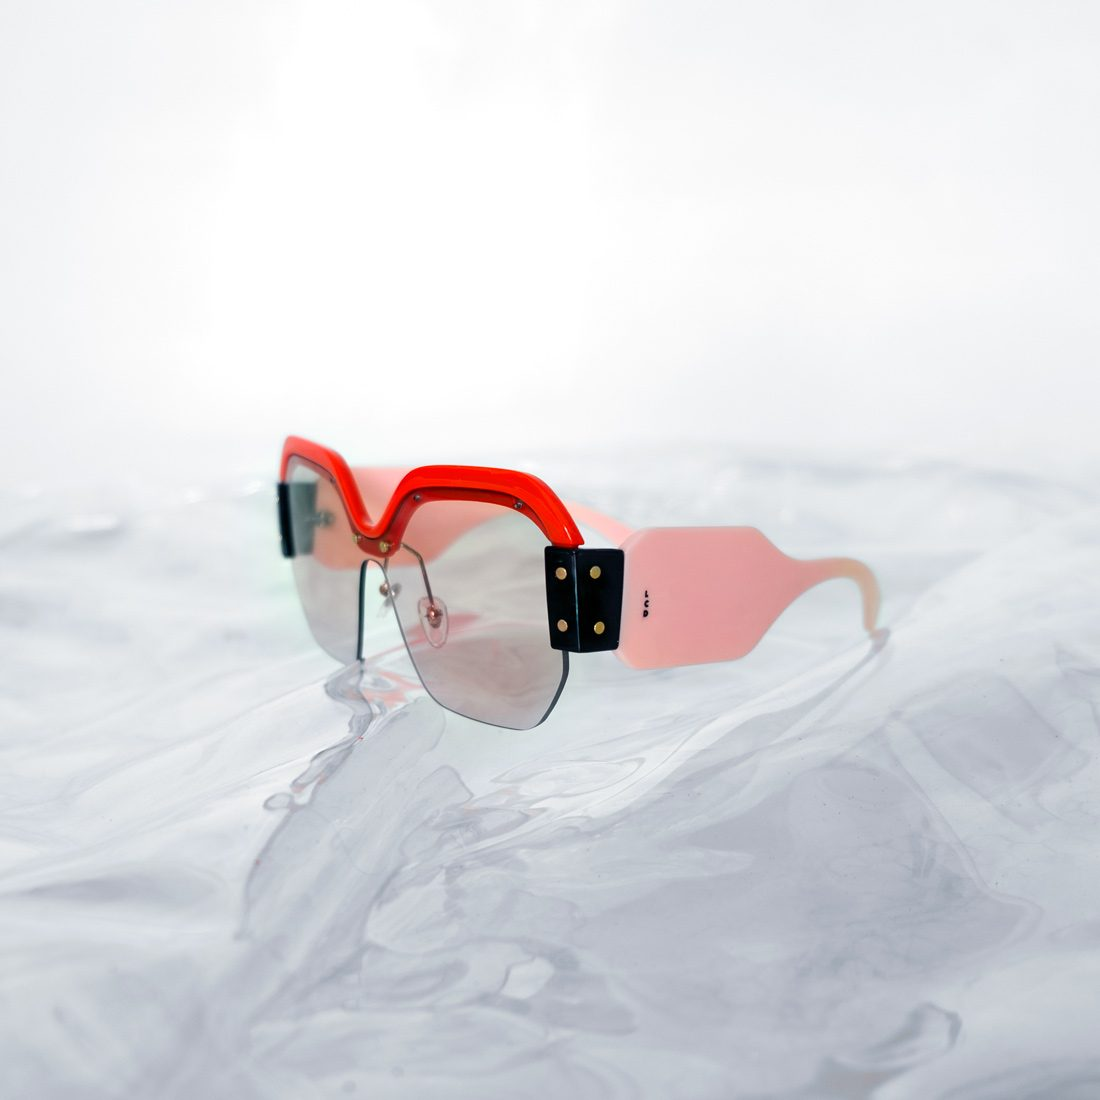 LCDglasses_pink3